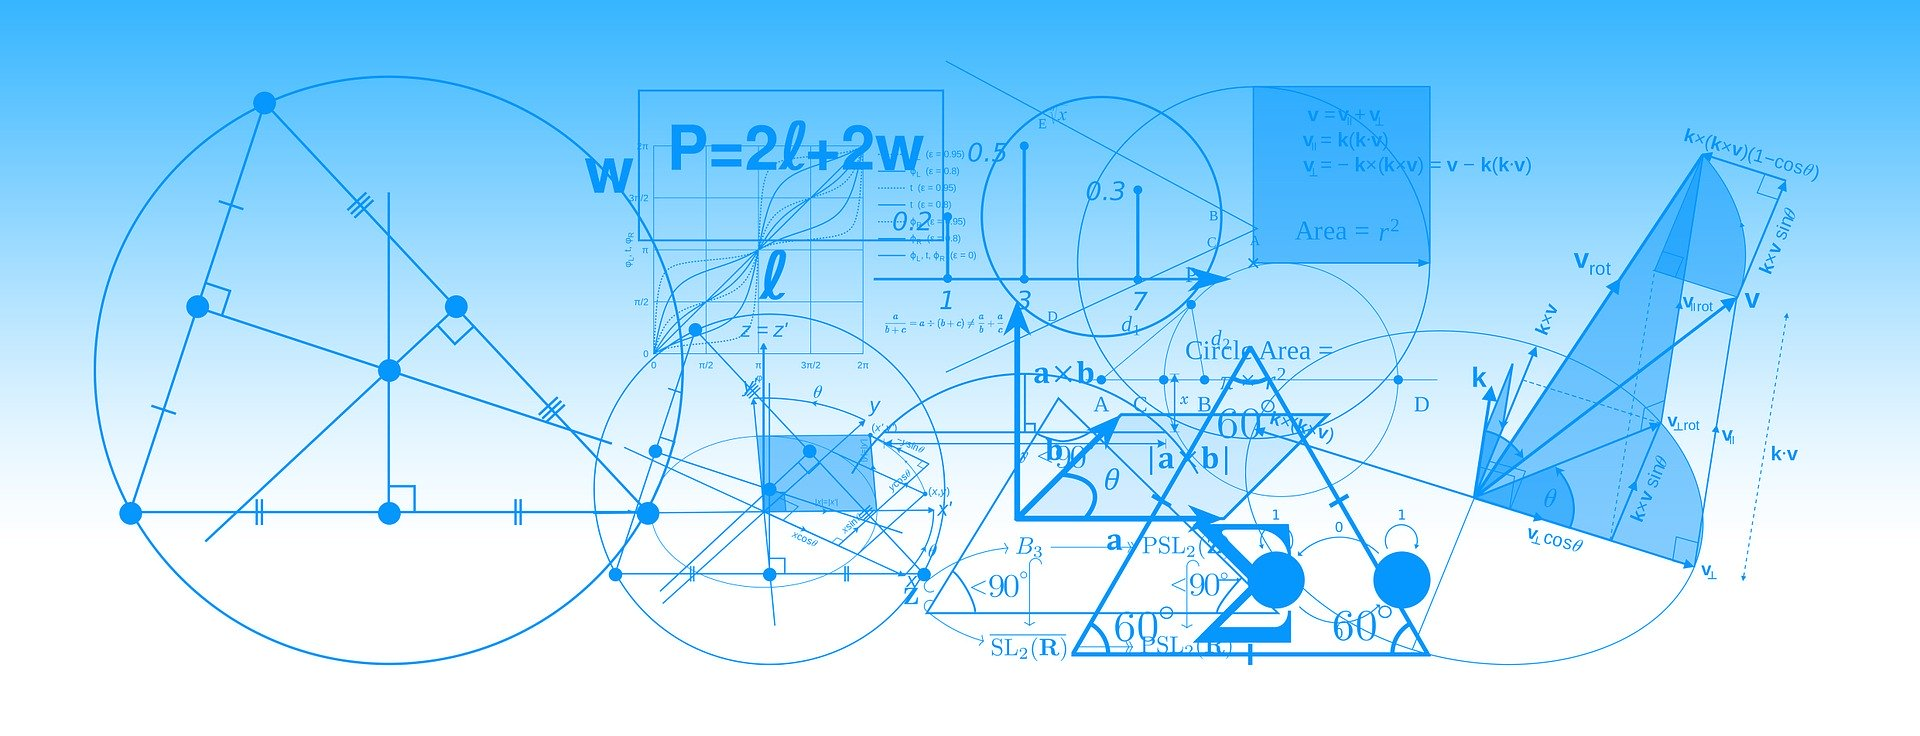 blue & white image random math shapes & formulas